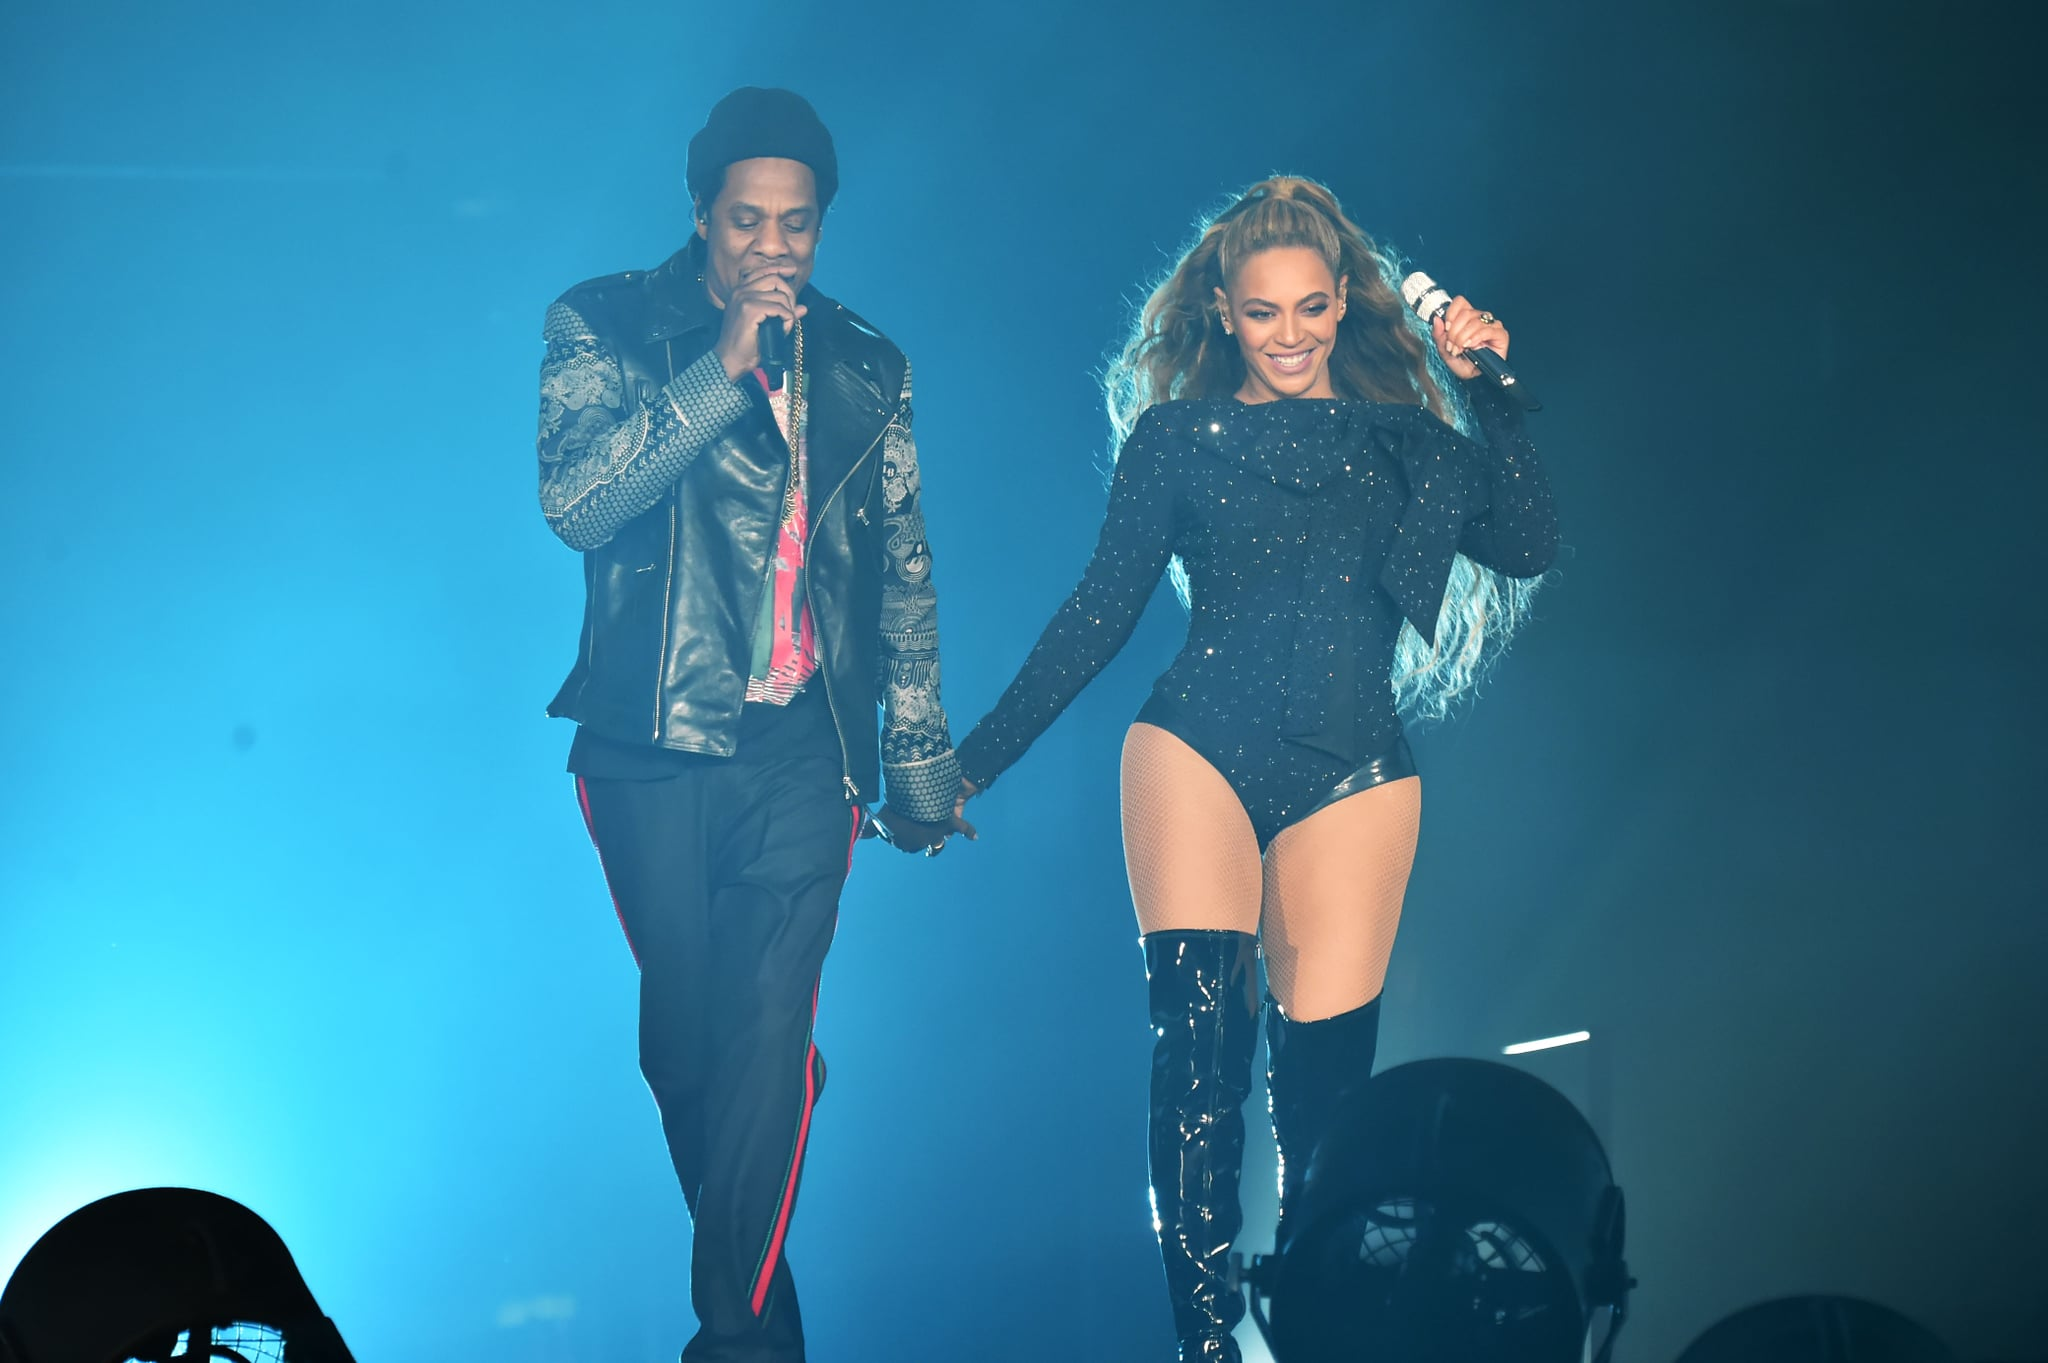 GLASGOW, SCOTLAND - JUNE 09:  Beyonce and Jay-Z perform together holding hands on stage during the